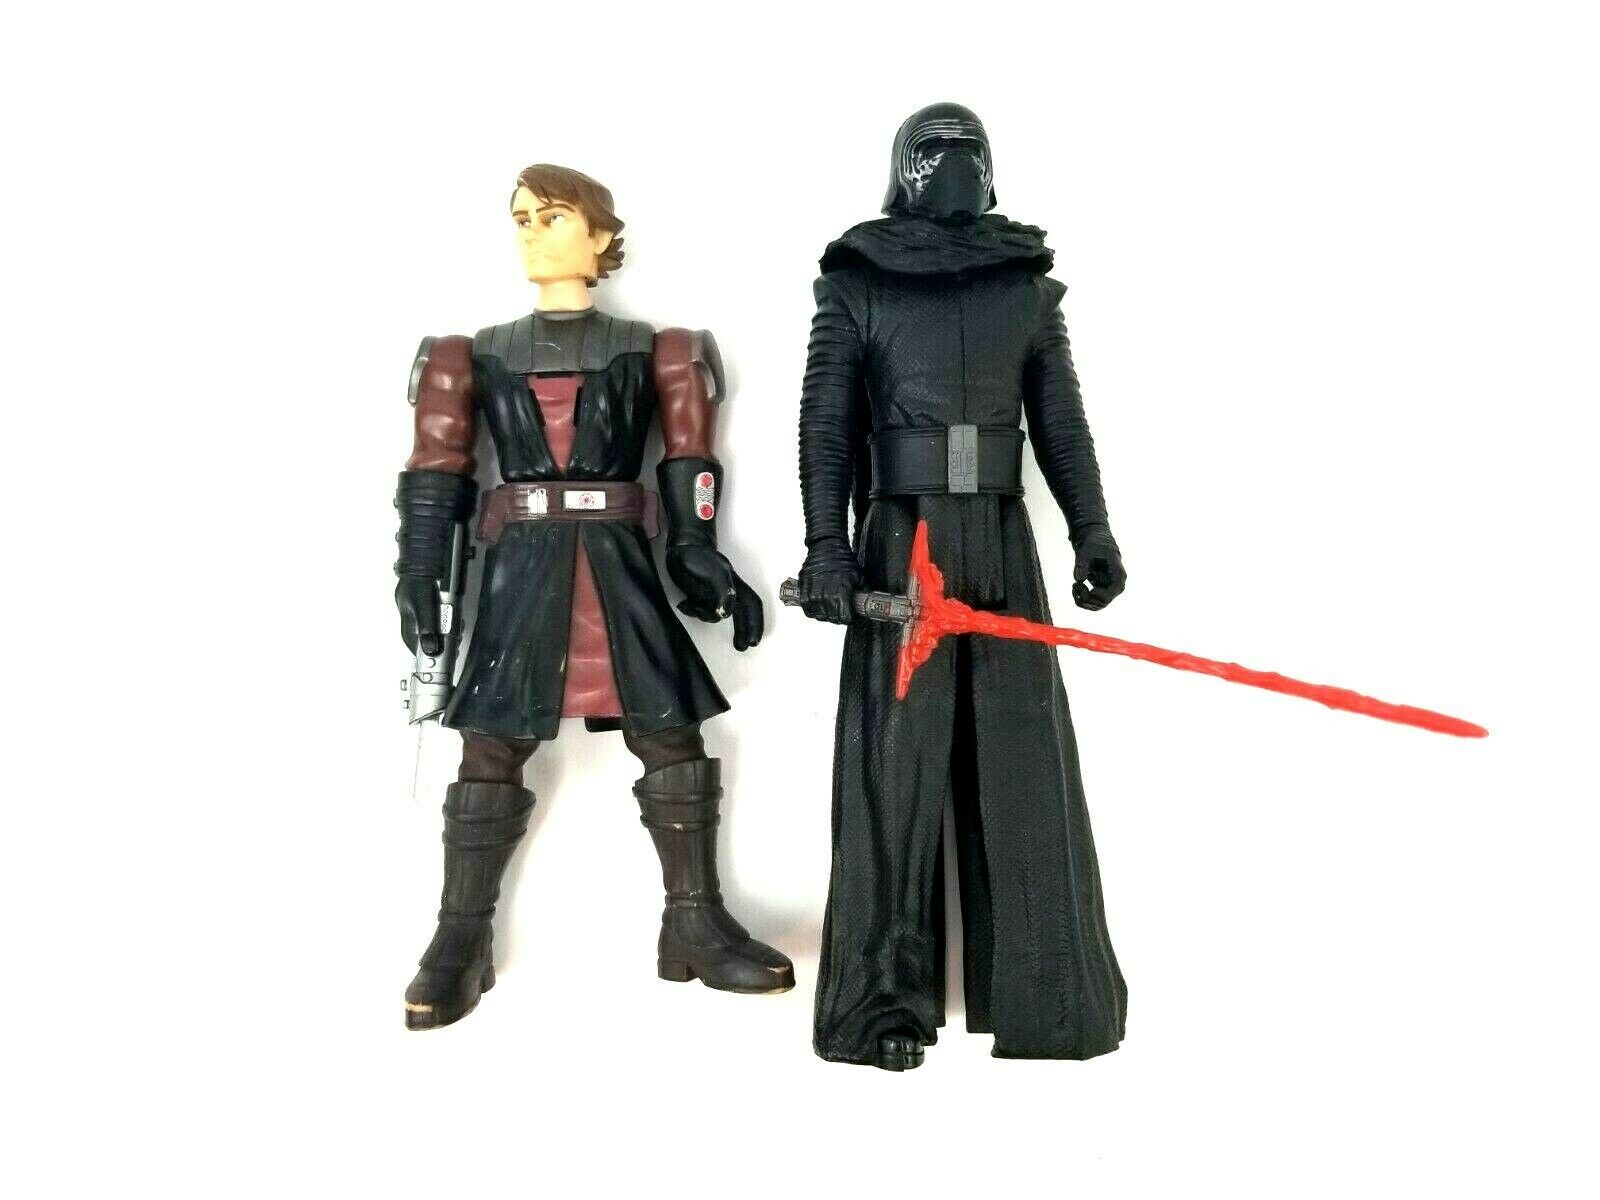 Lot of 2 Star Wars Action Figures with Swords One is a Talking Figure Used